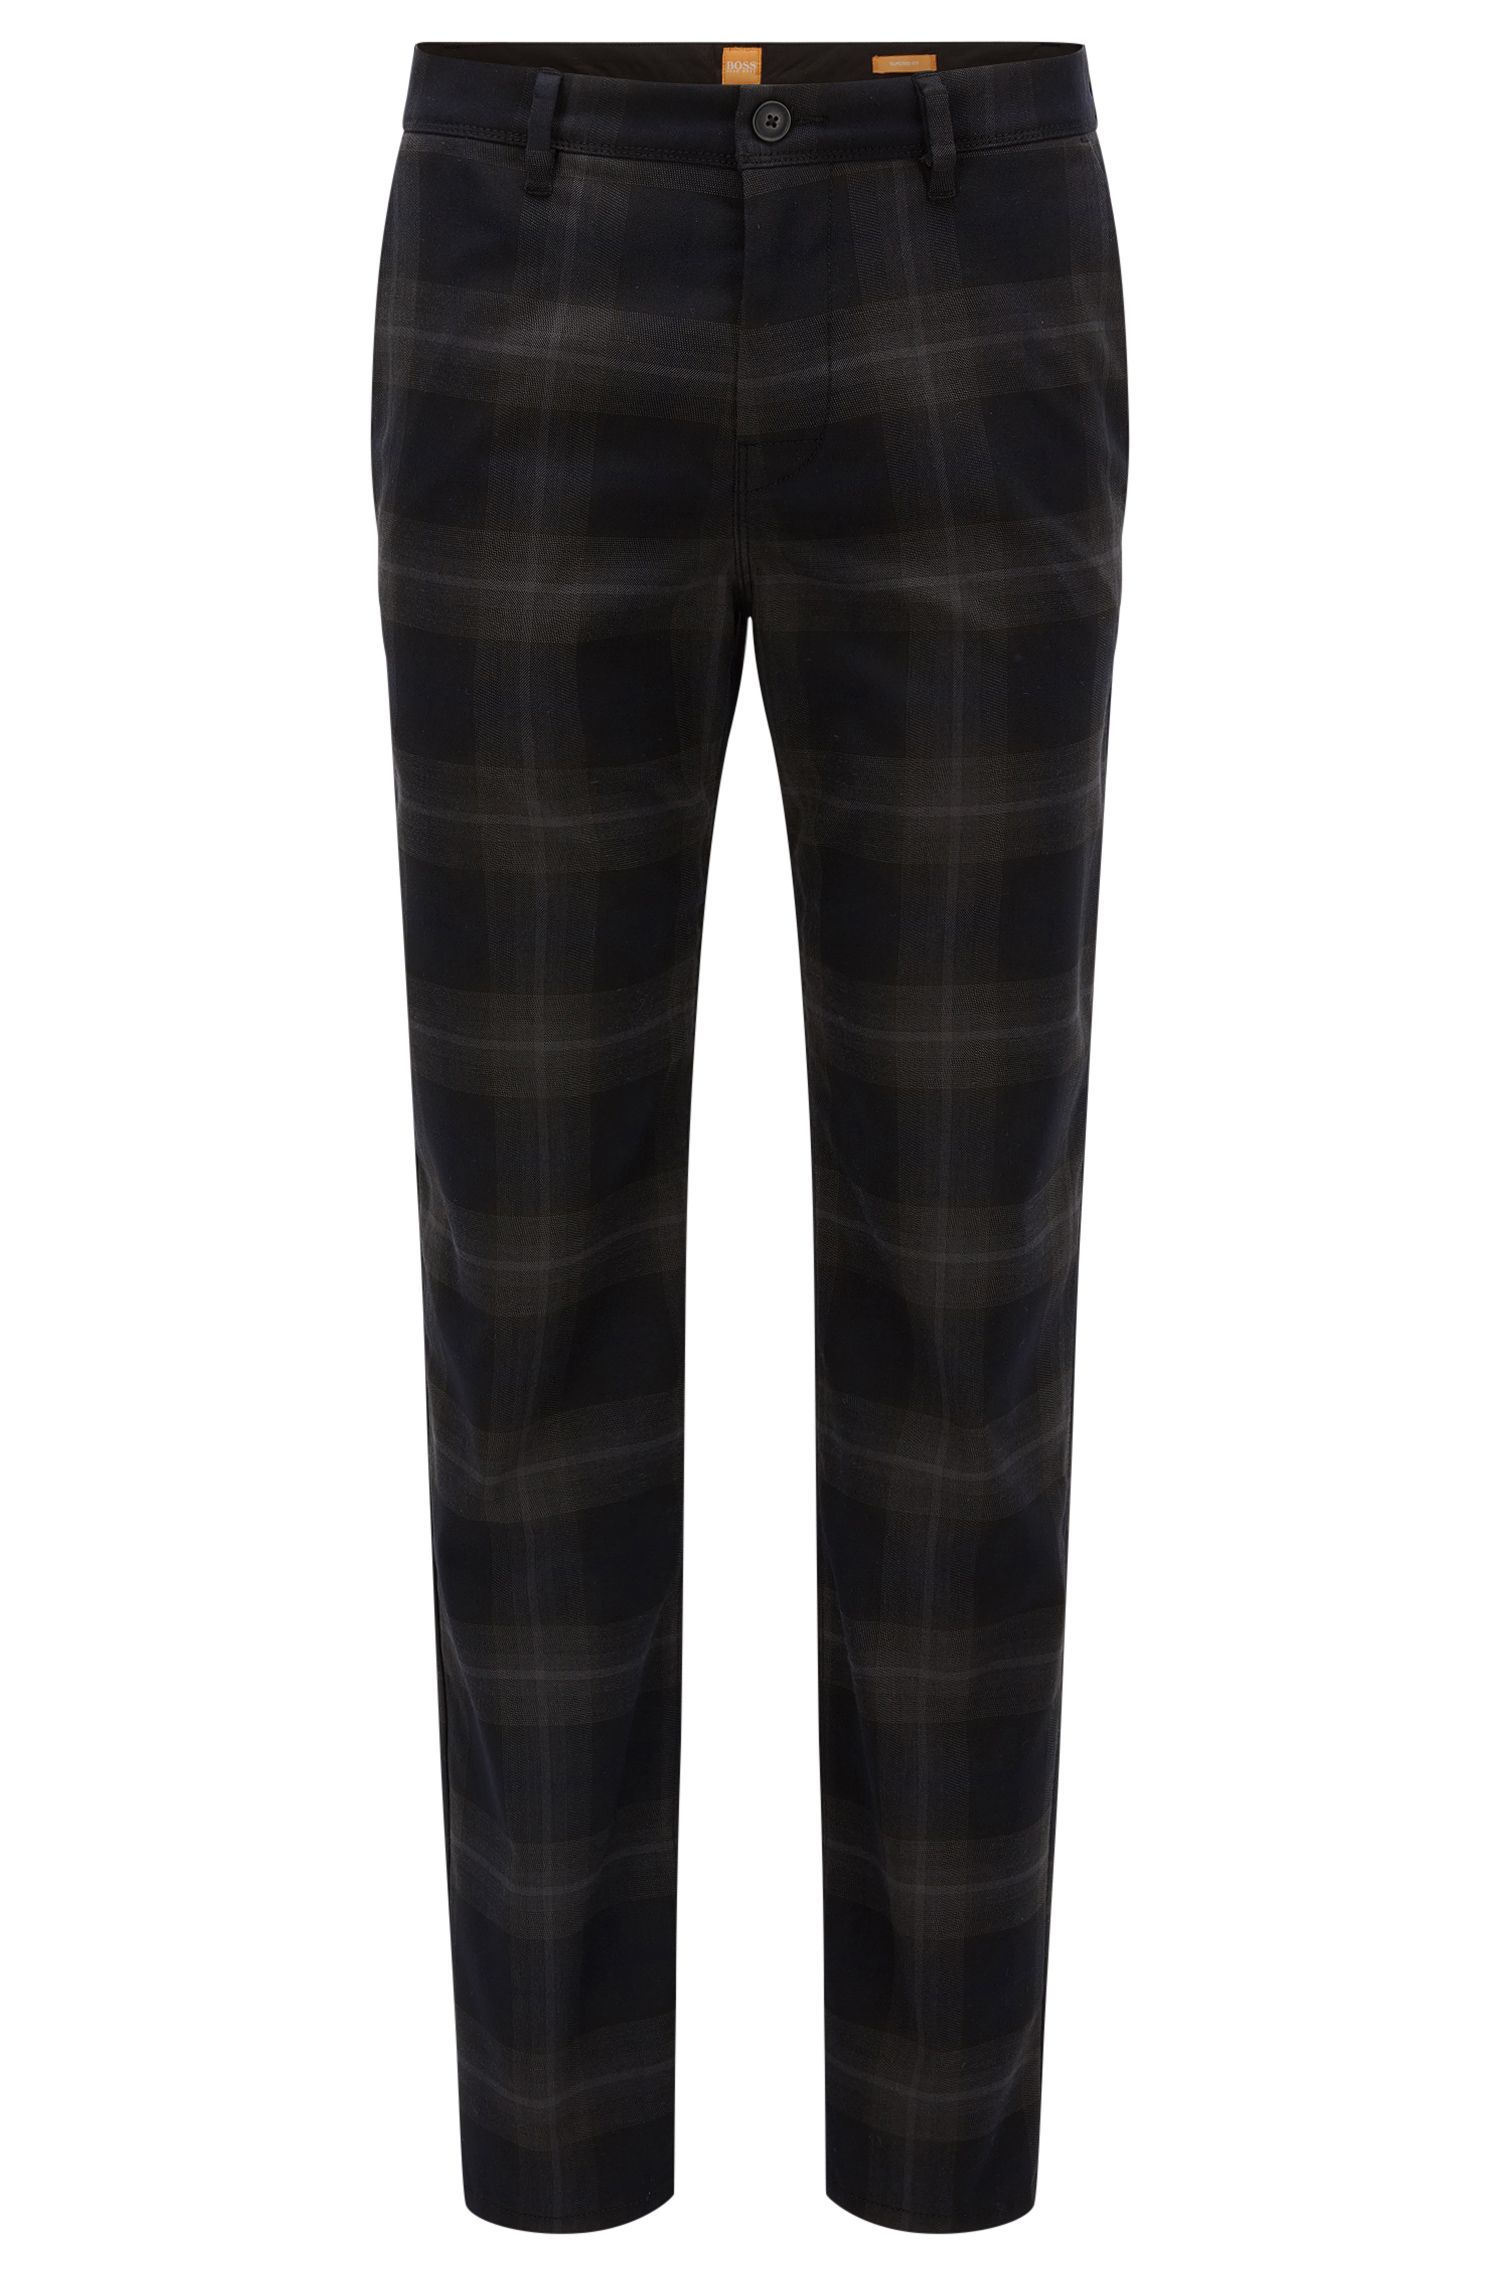 Plaid Stretch Pants, Tapered Fit | Stapered W